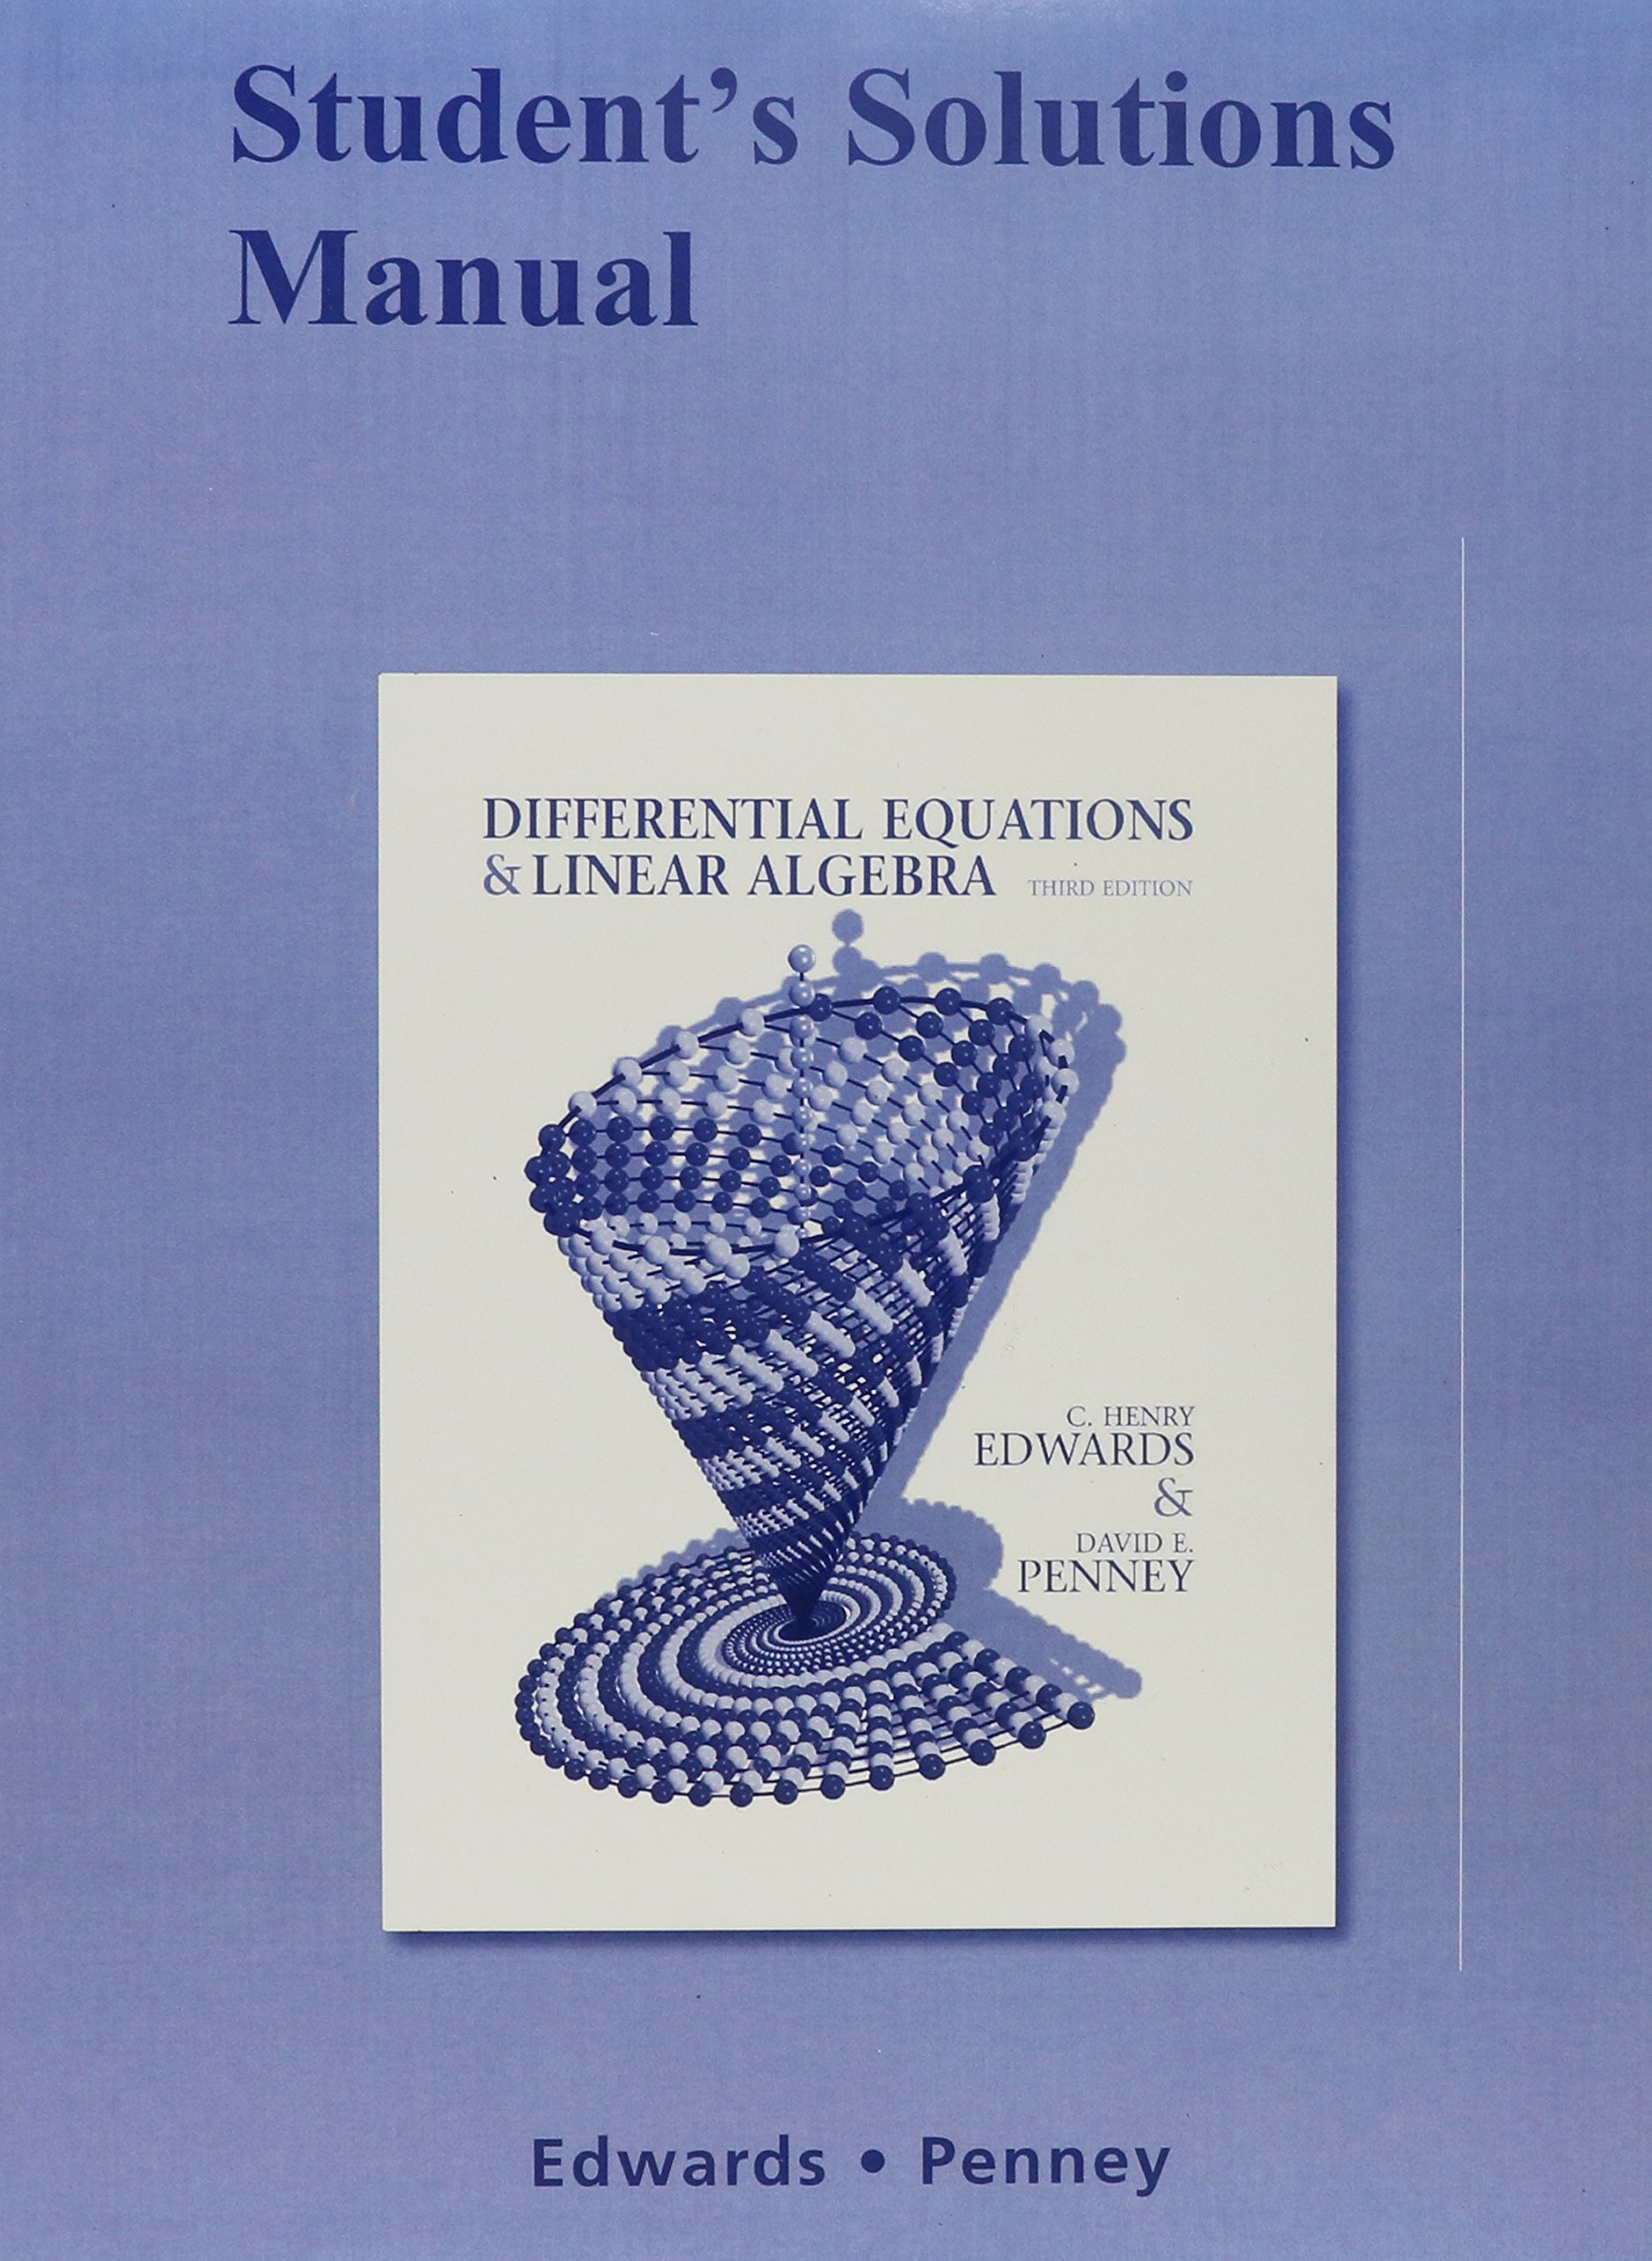 Differential Equations and Linear Algebra and Student Solutions Manual: C.  Henry Edwards, David E. Penney: 9780321668462: Books - Amazon.ca